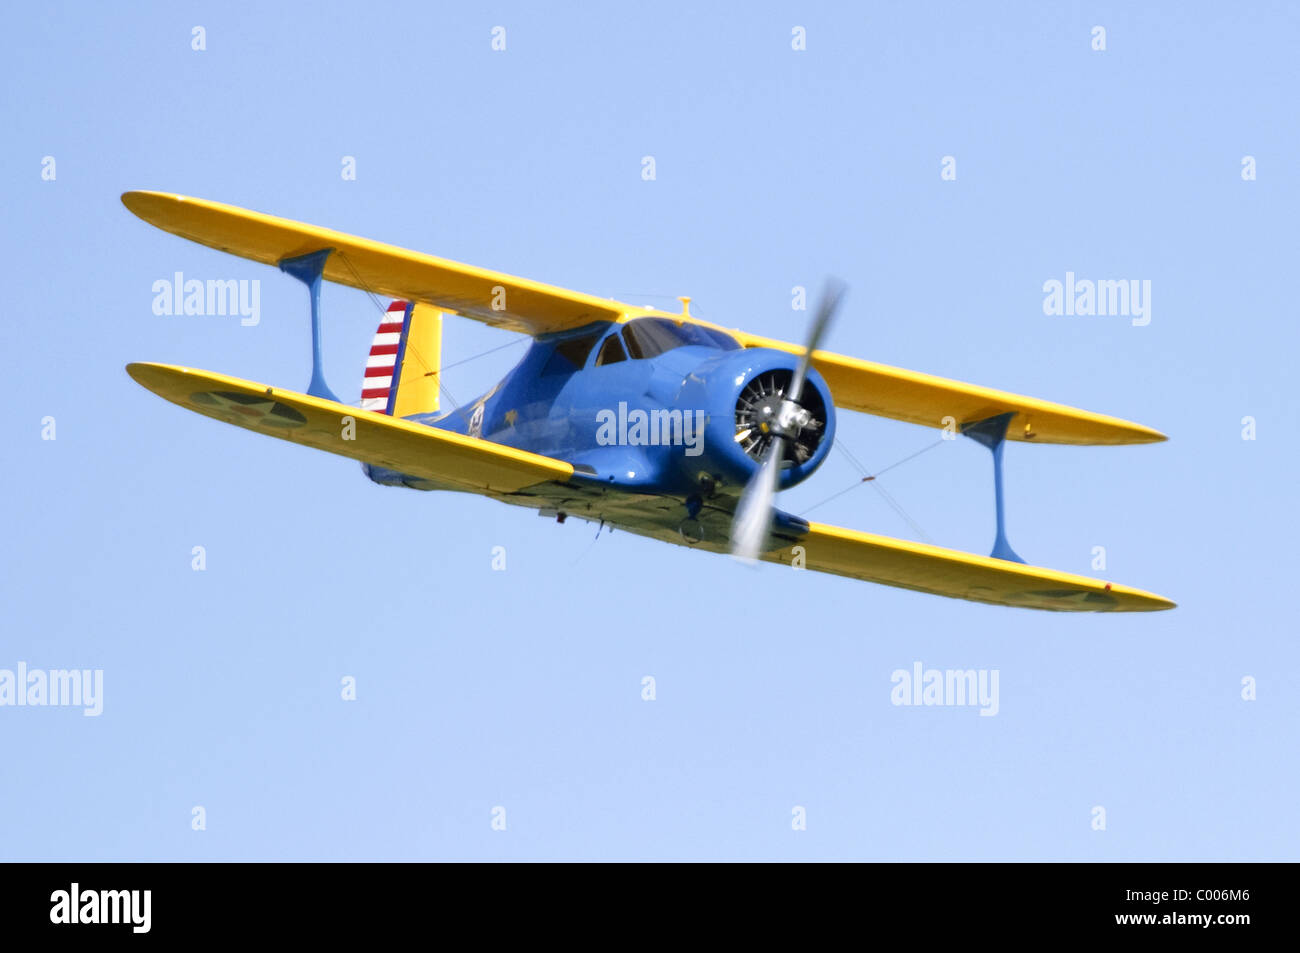 Beech YC-43 Traveller (Staggerwing) biplane making a low flypast at Duxford Flying Legends Airshow - Stock Image